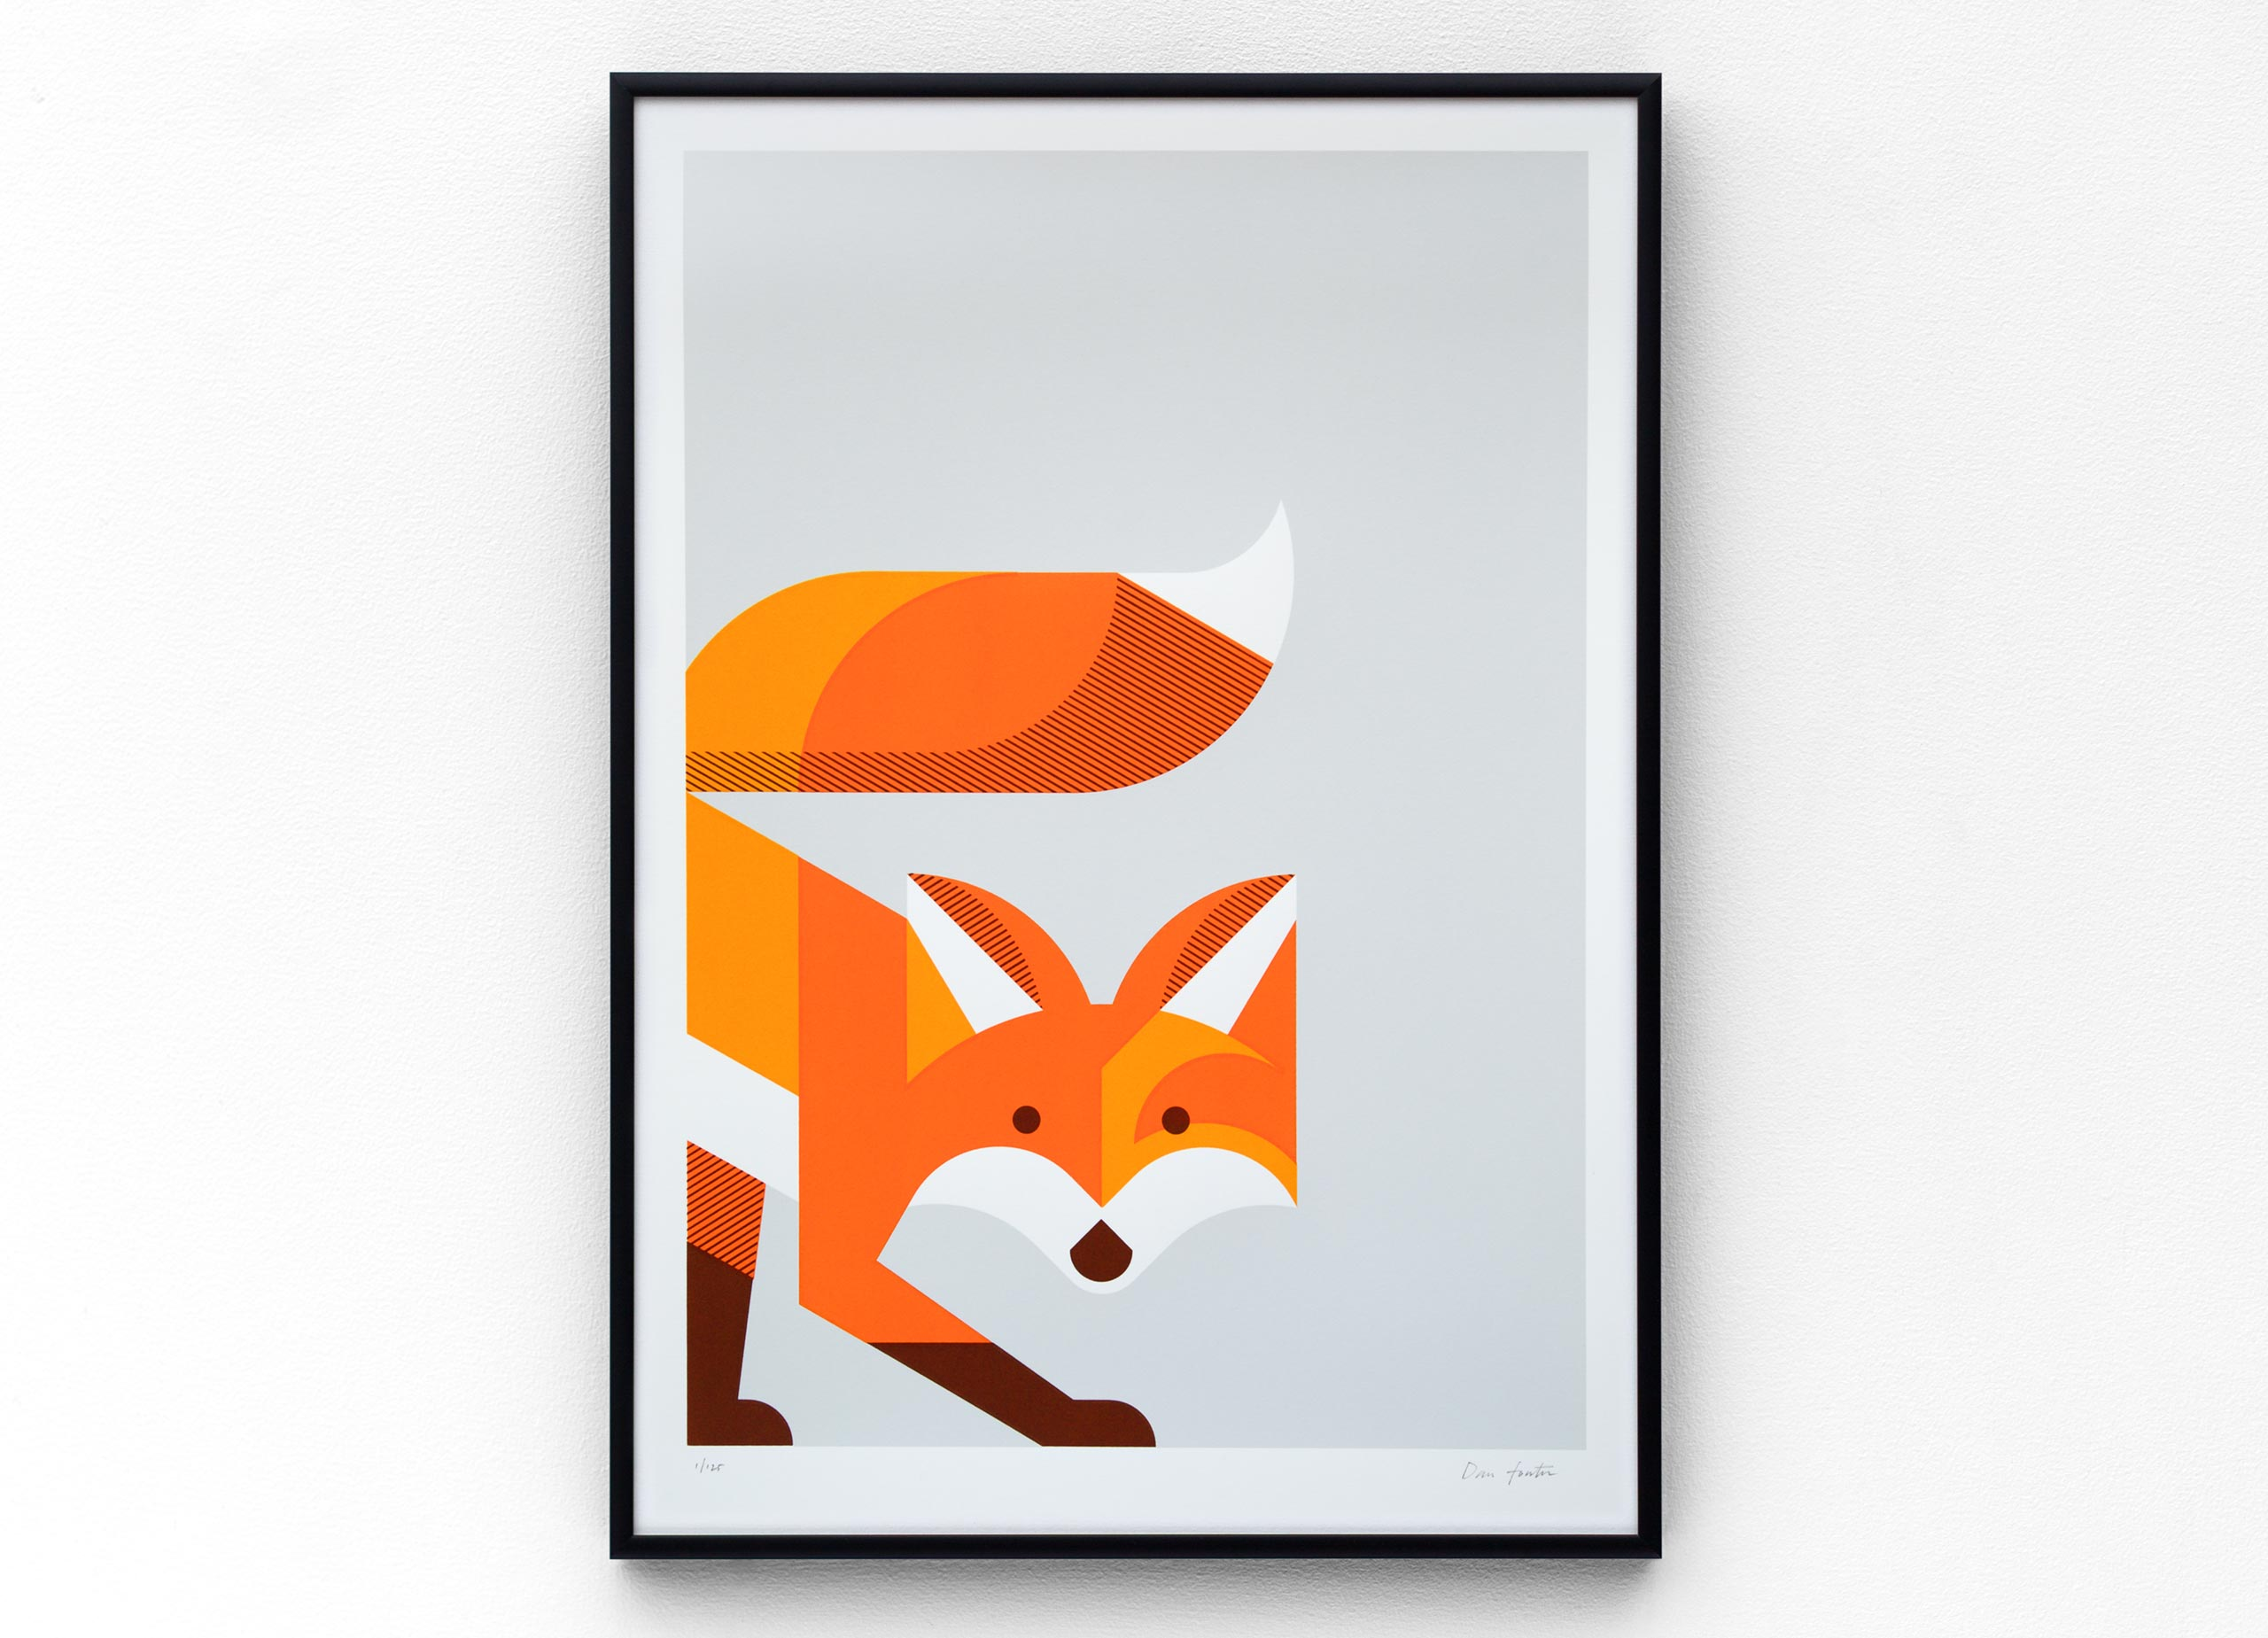 Fox Screen Screen Print by Dan Forster created for The Lost Fox